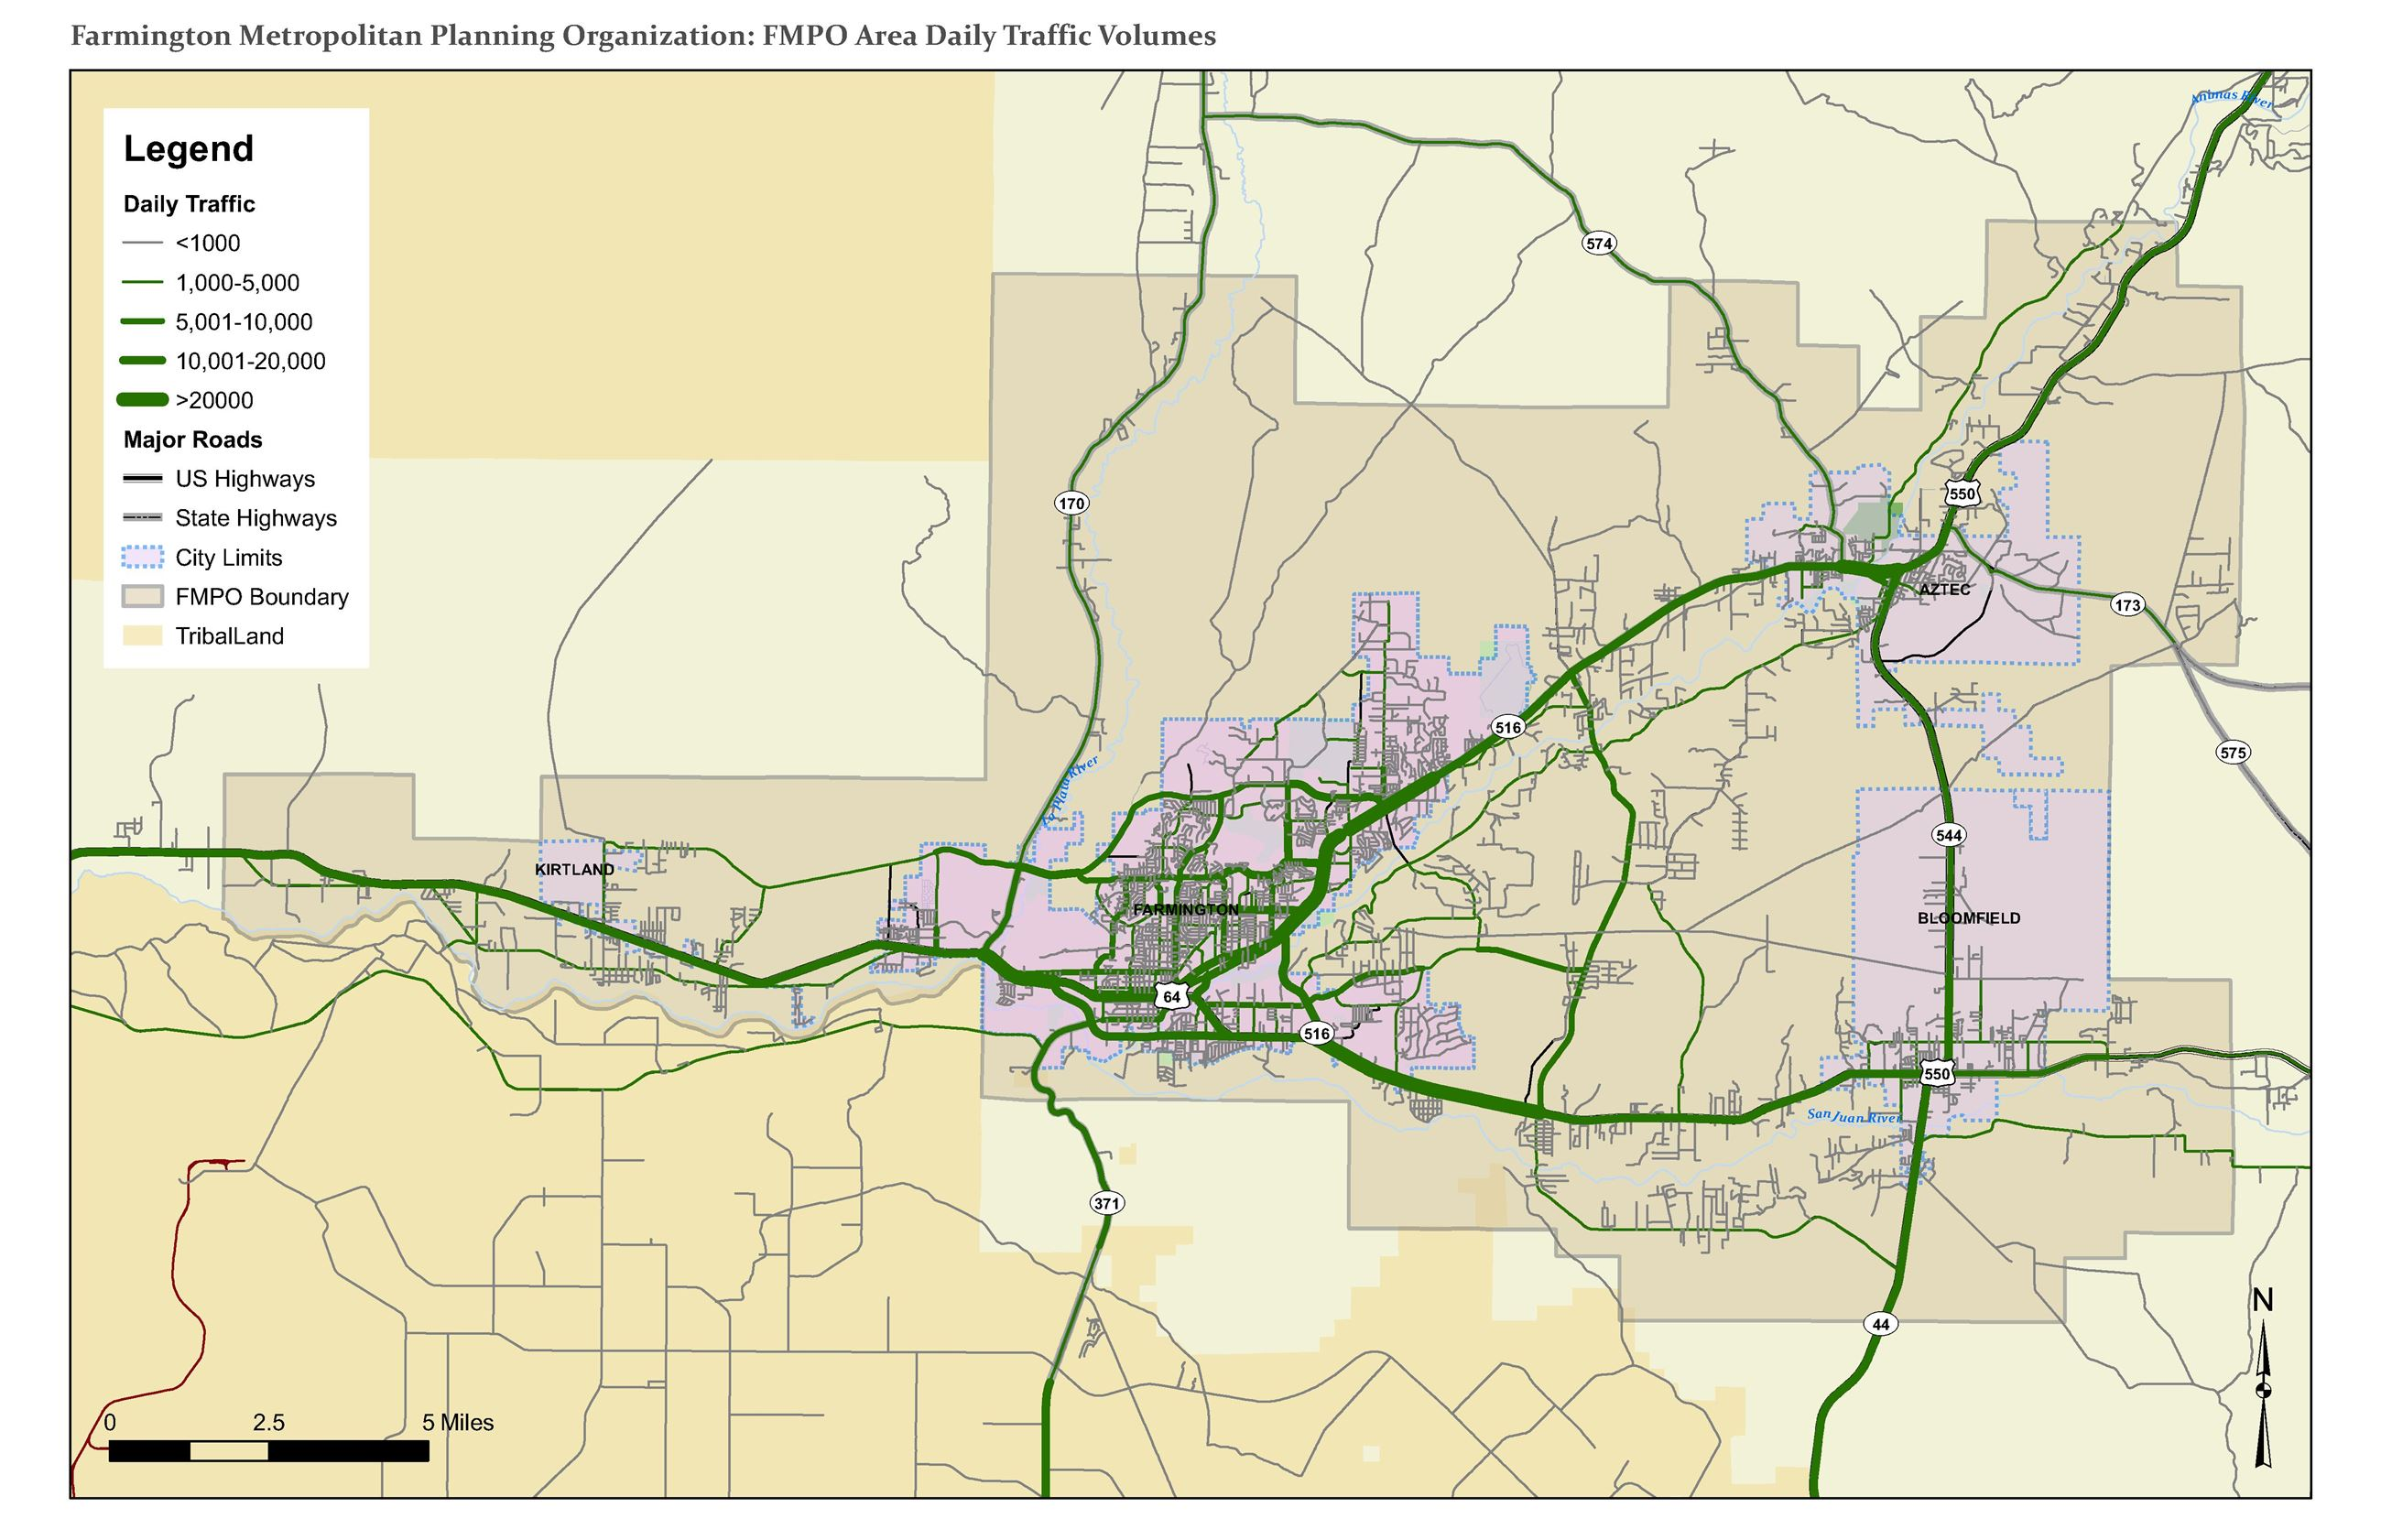 Map - FMPO Area Daily Traffic Volumes Opens in new window